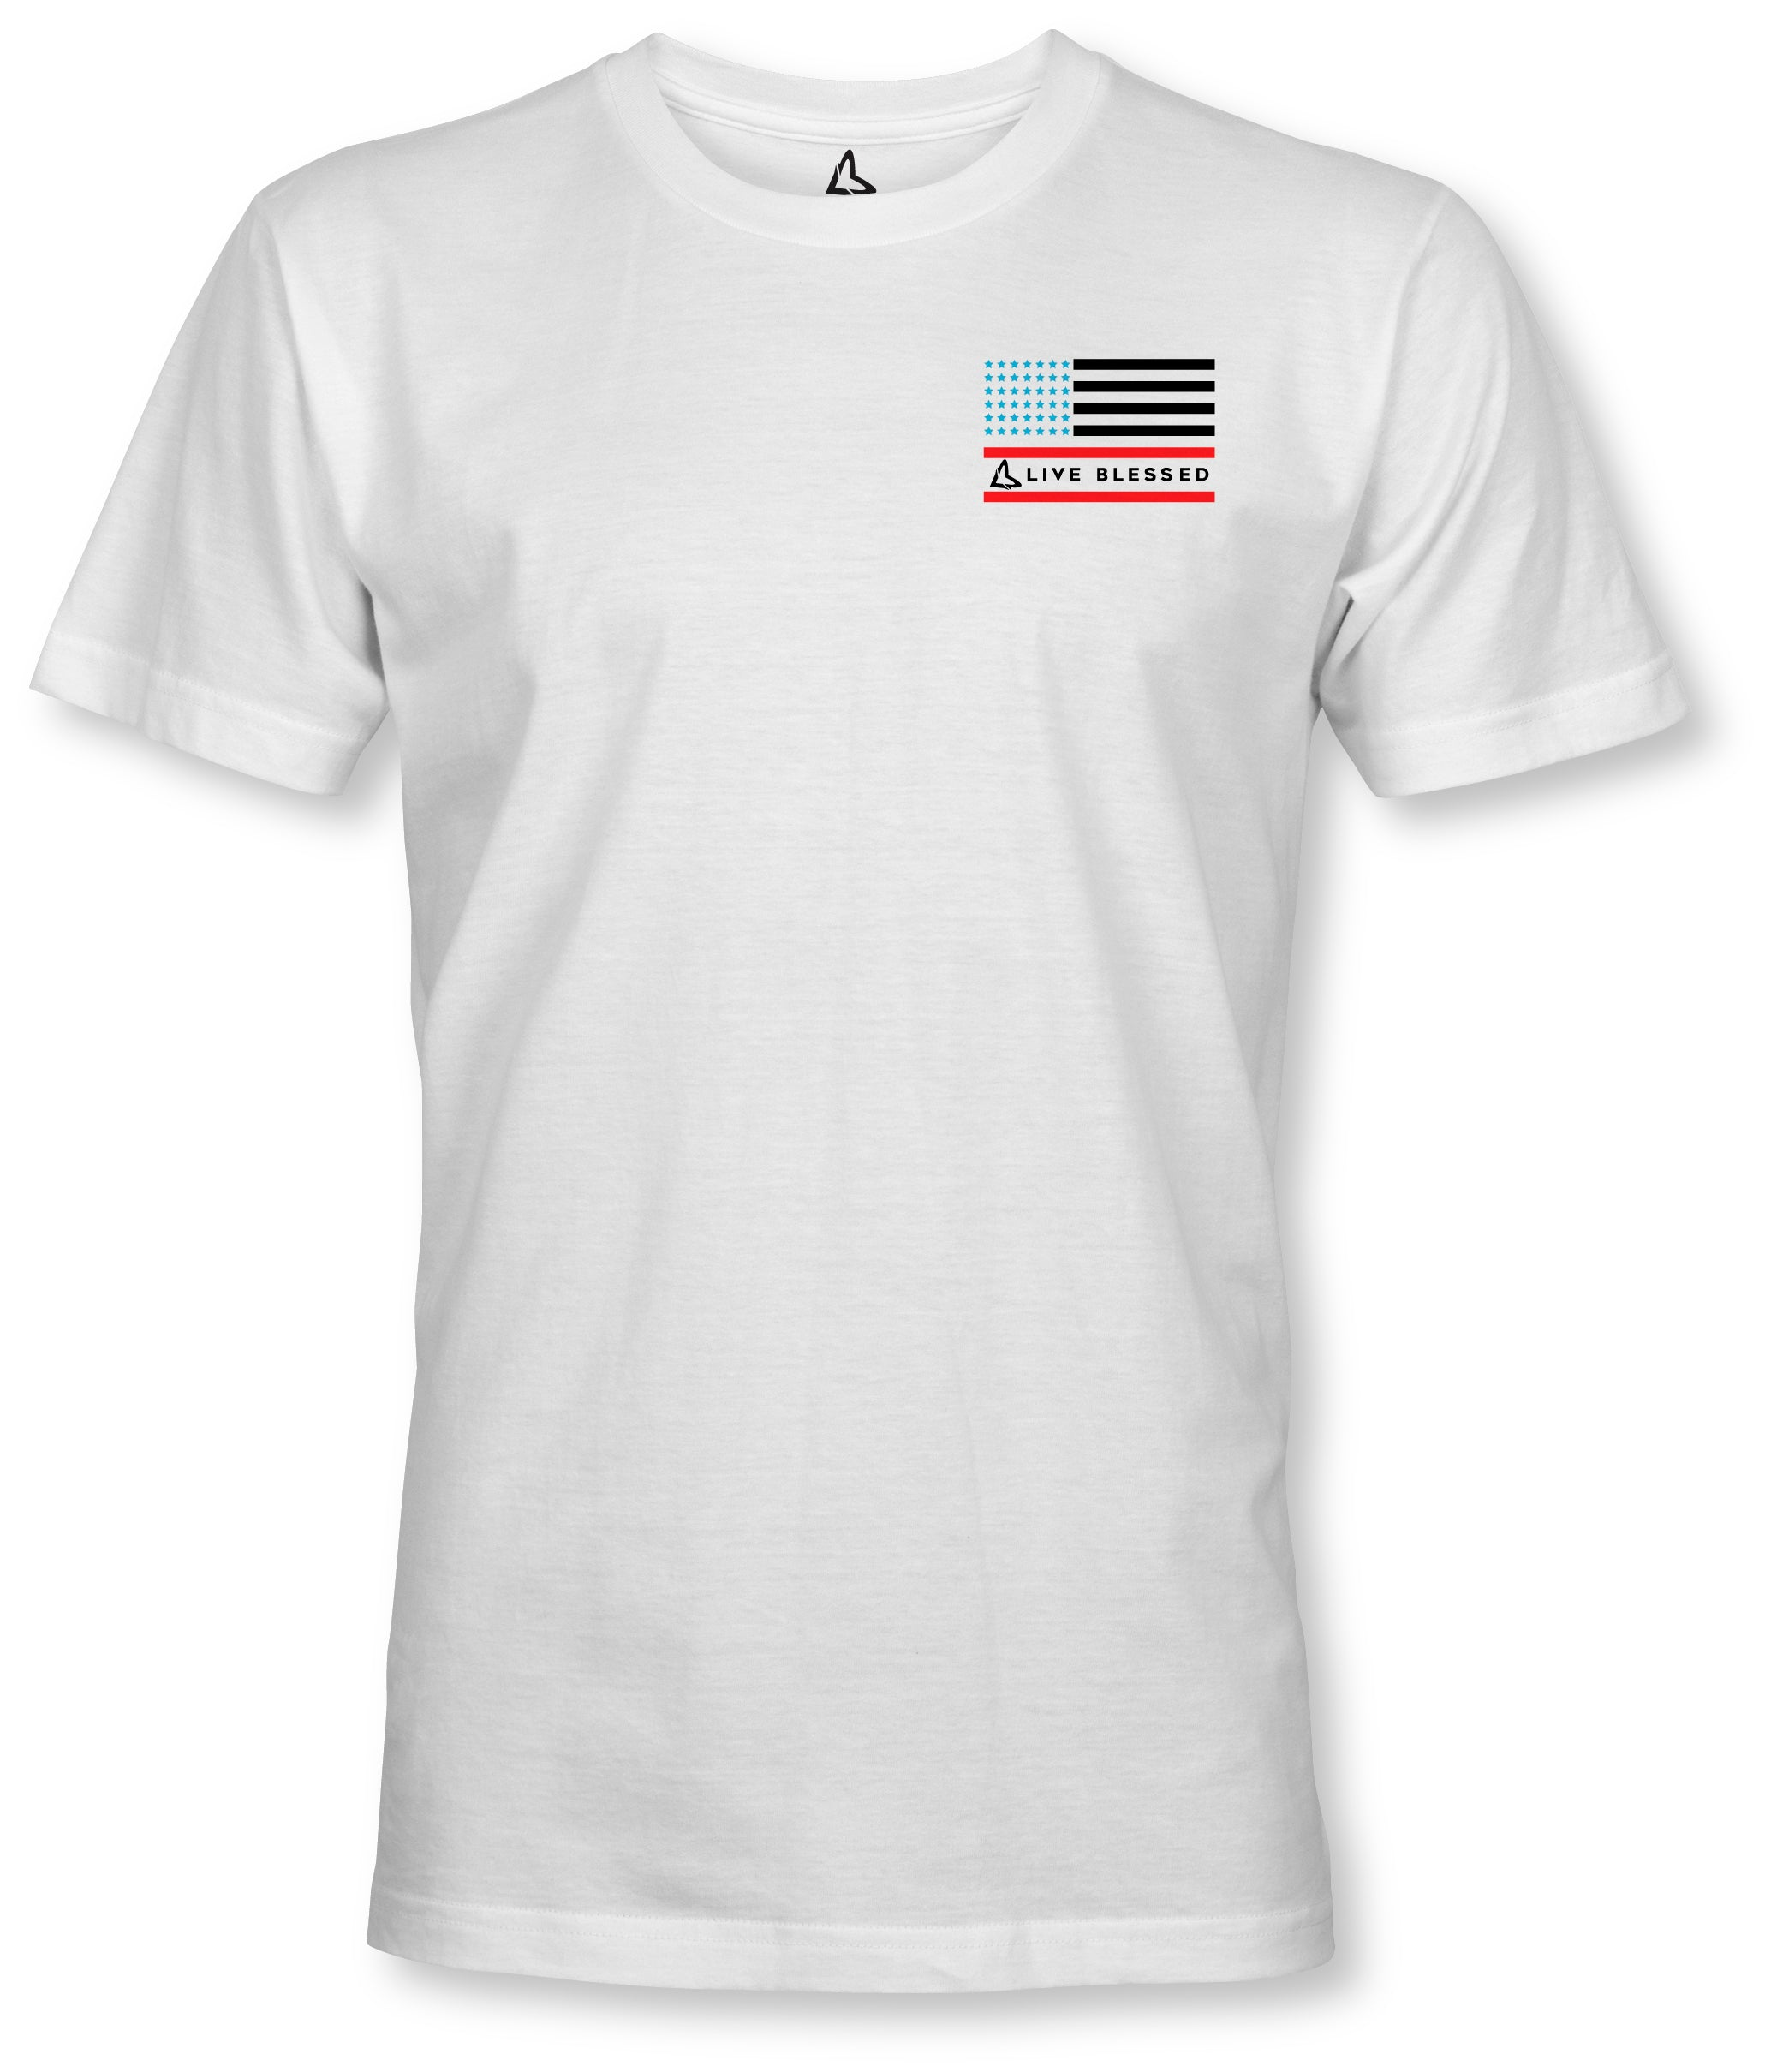 MEN'S LVBLSD STARS & STRIPES - WHITE TEE